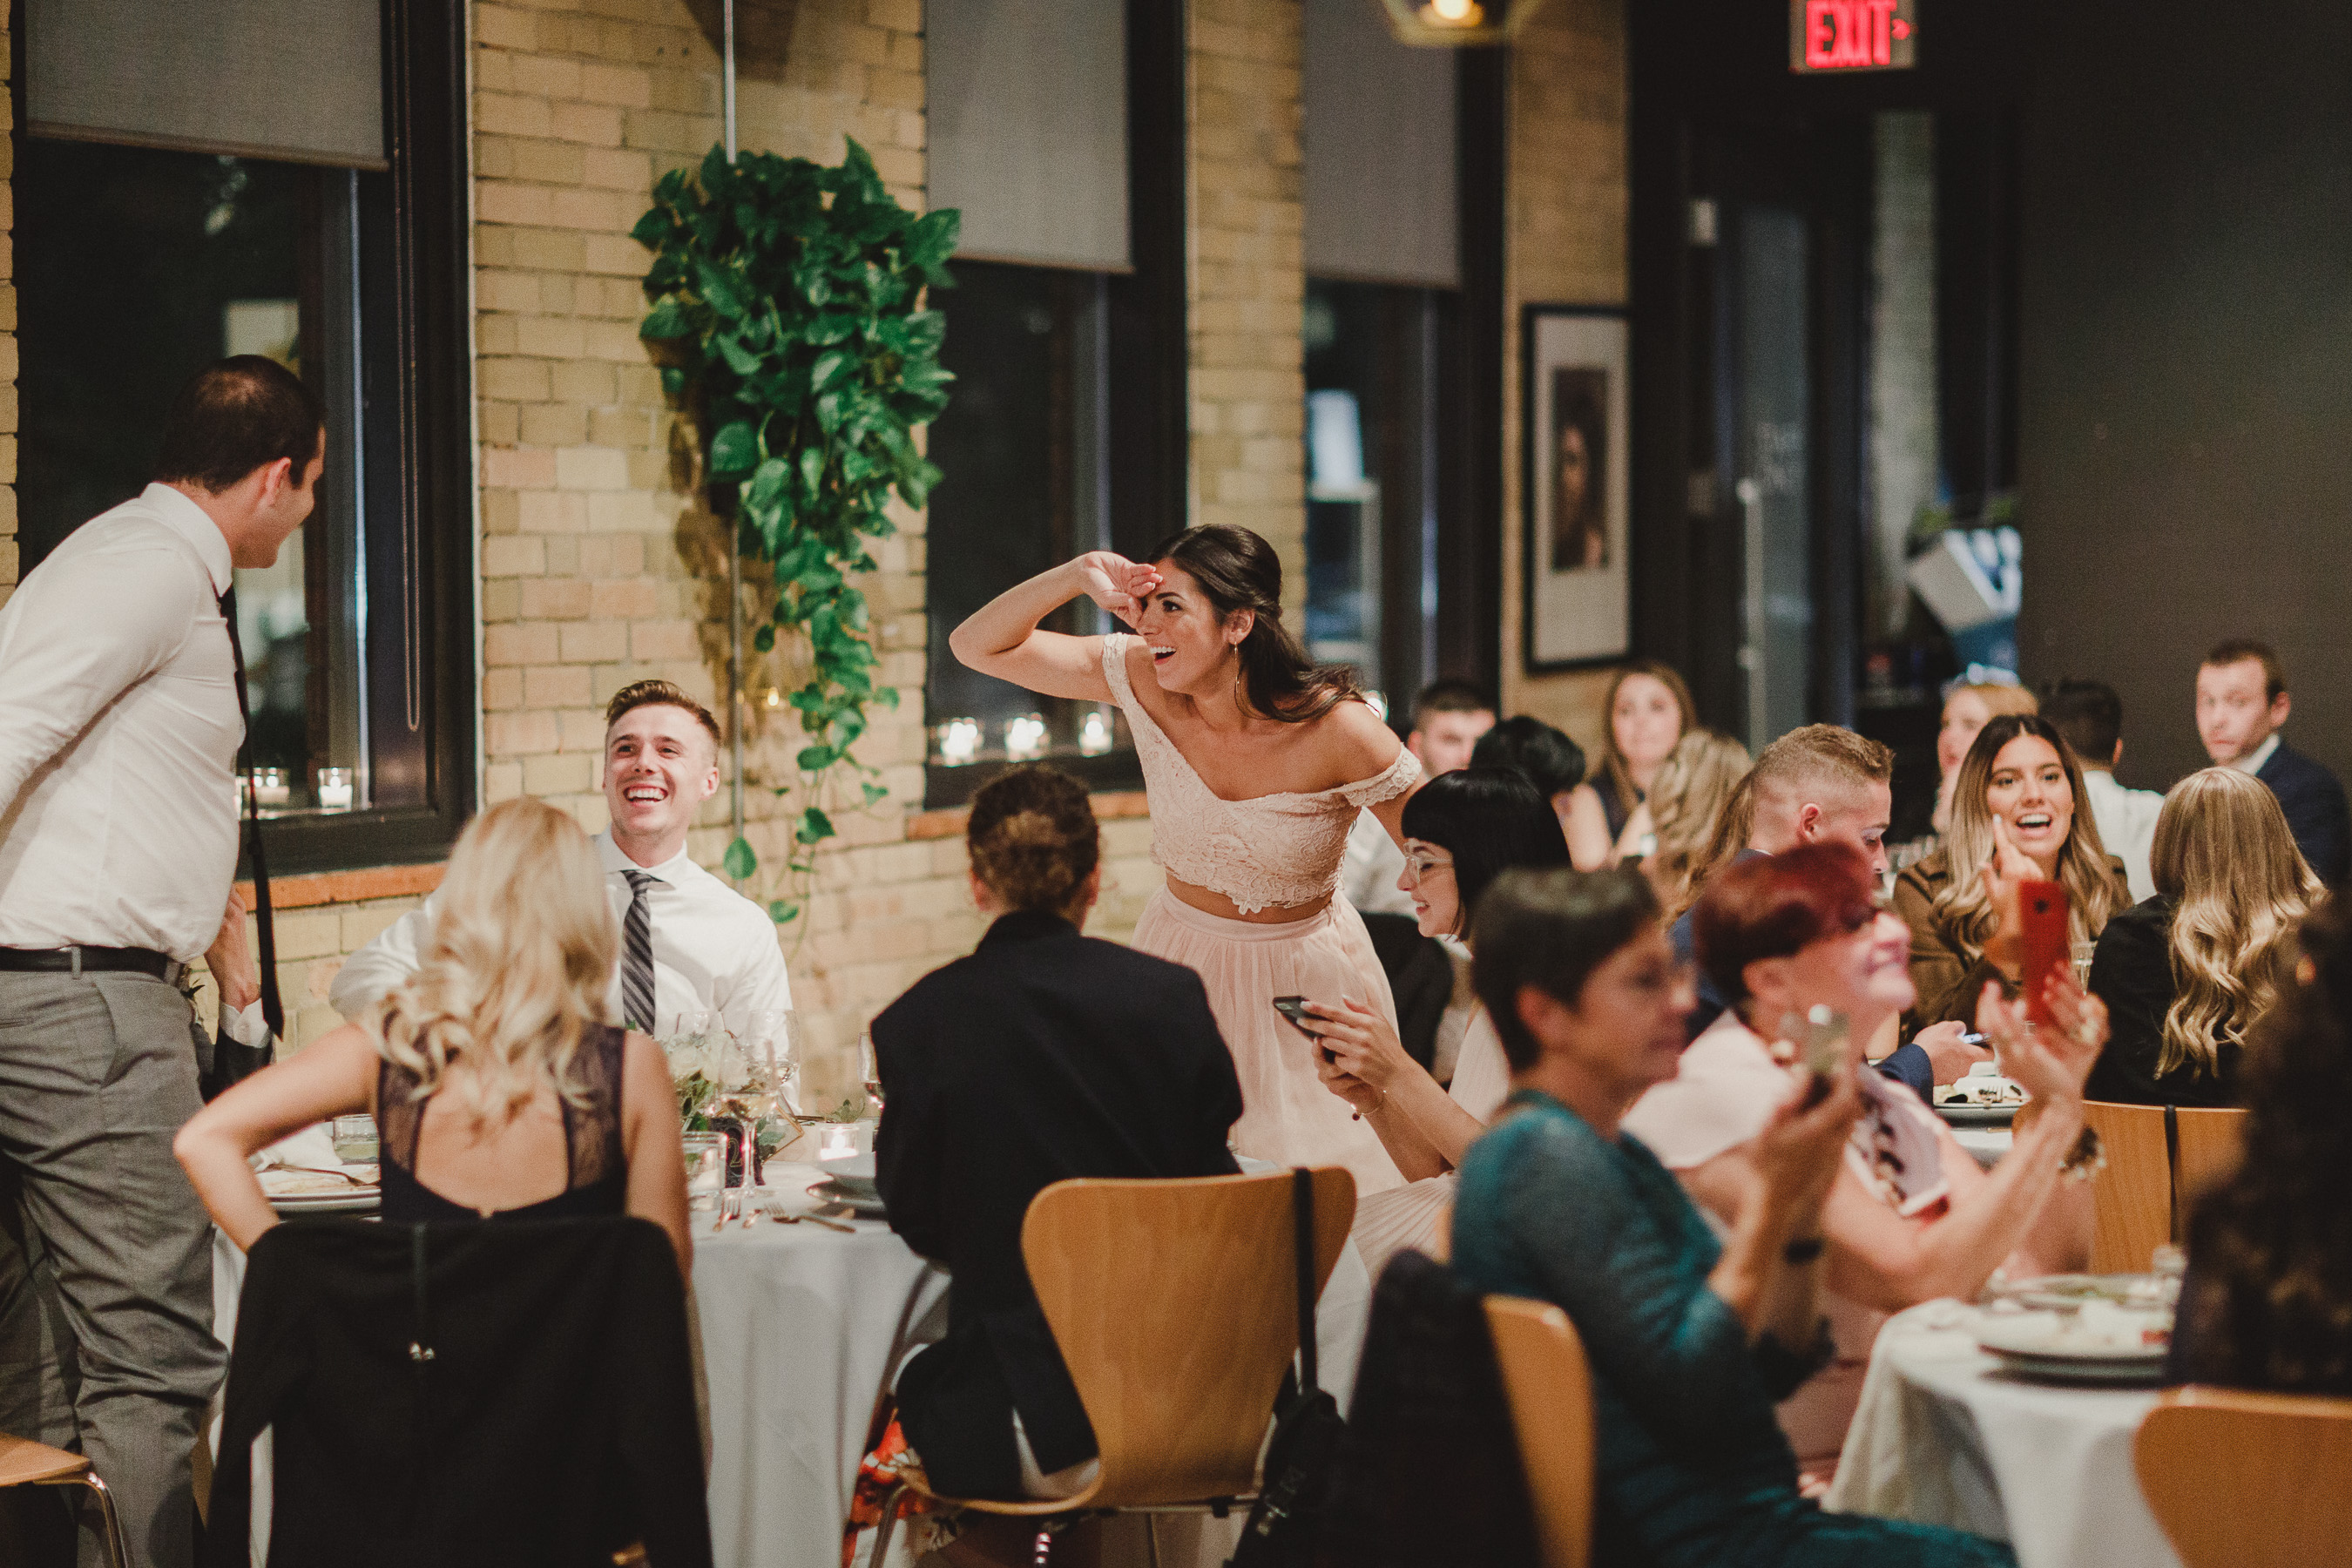 The Spoke Club Wedding Pictures by Toronto Top Wedding Photographer Avangard Photography